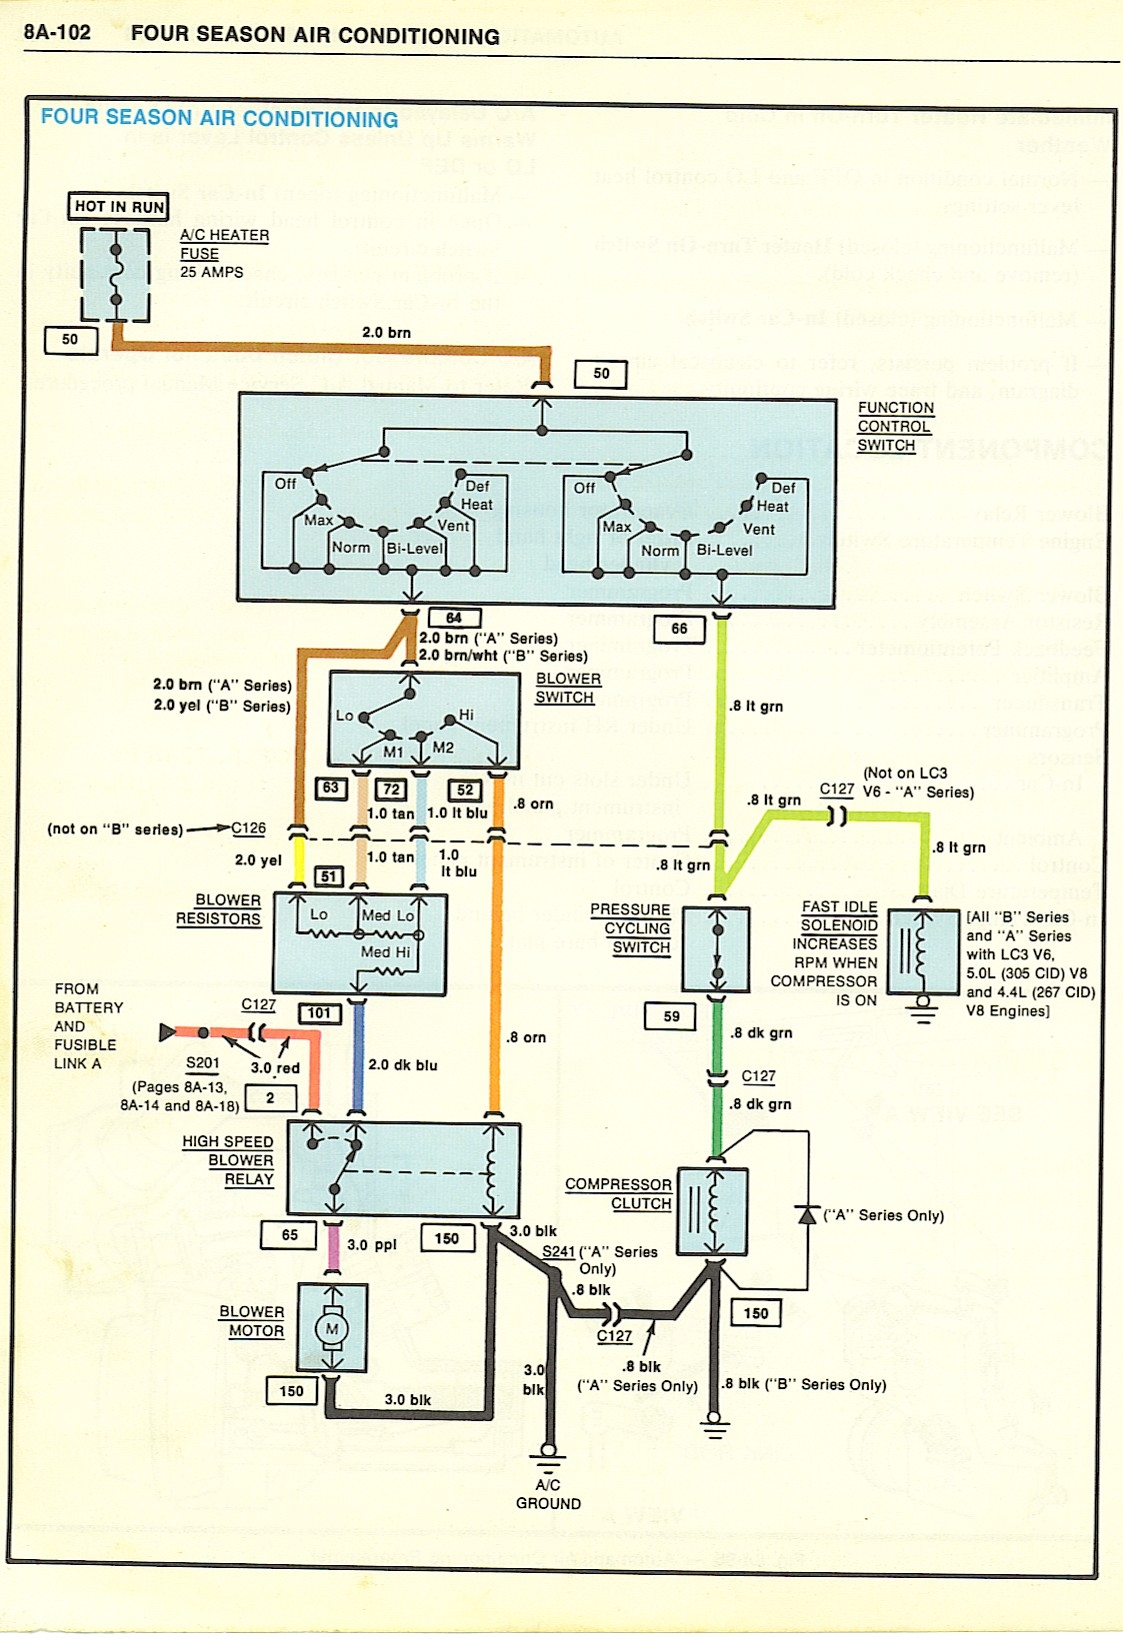 1972 Pontiac Ac Wiring Diagram Library 1970 Gto Schematic 1977 El Camino Radio Wire Data Schema U2022 Rh Cccgroup Co Firebird